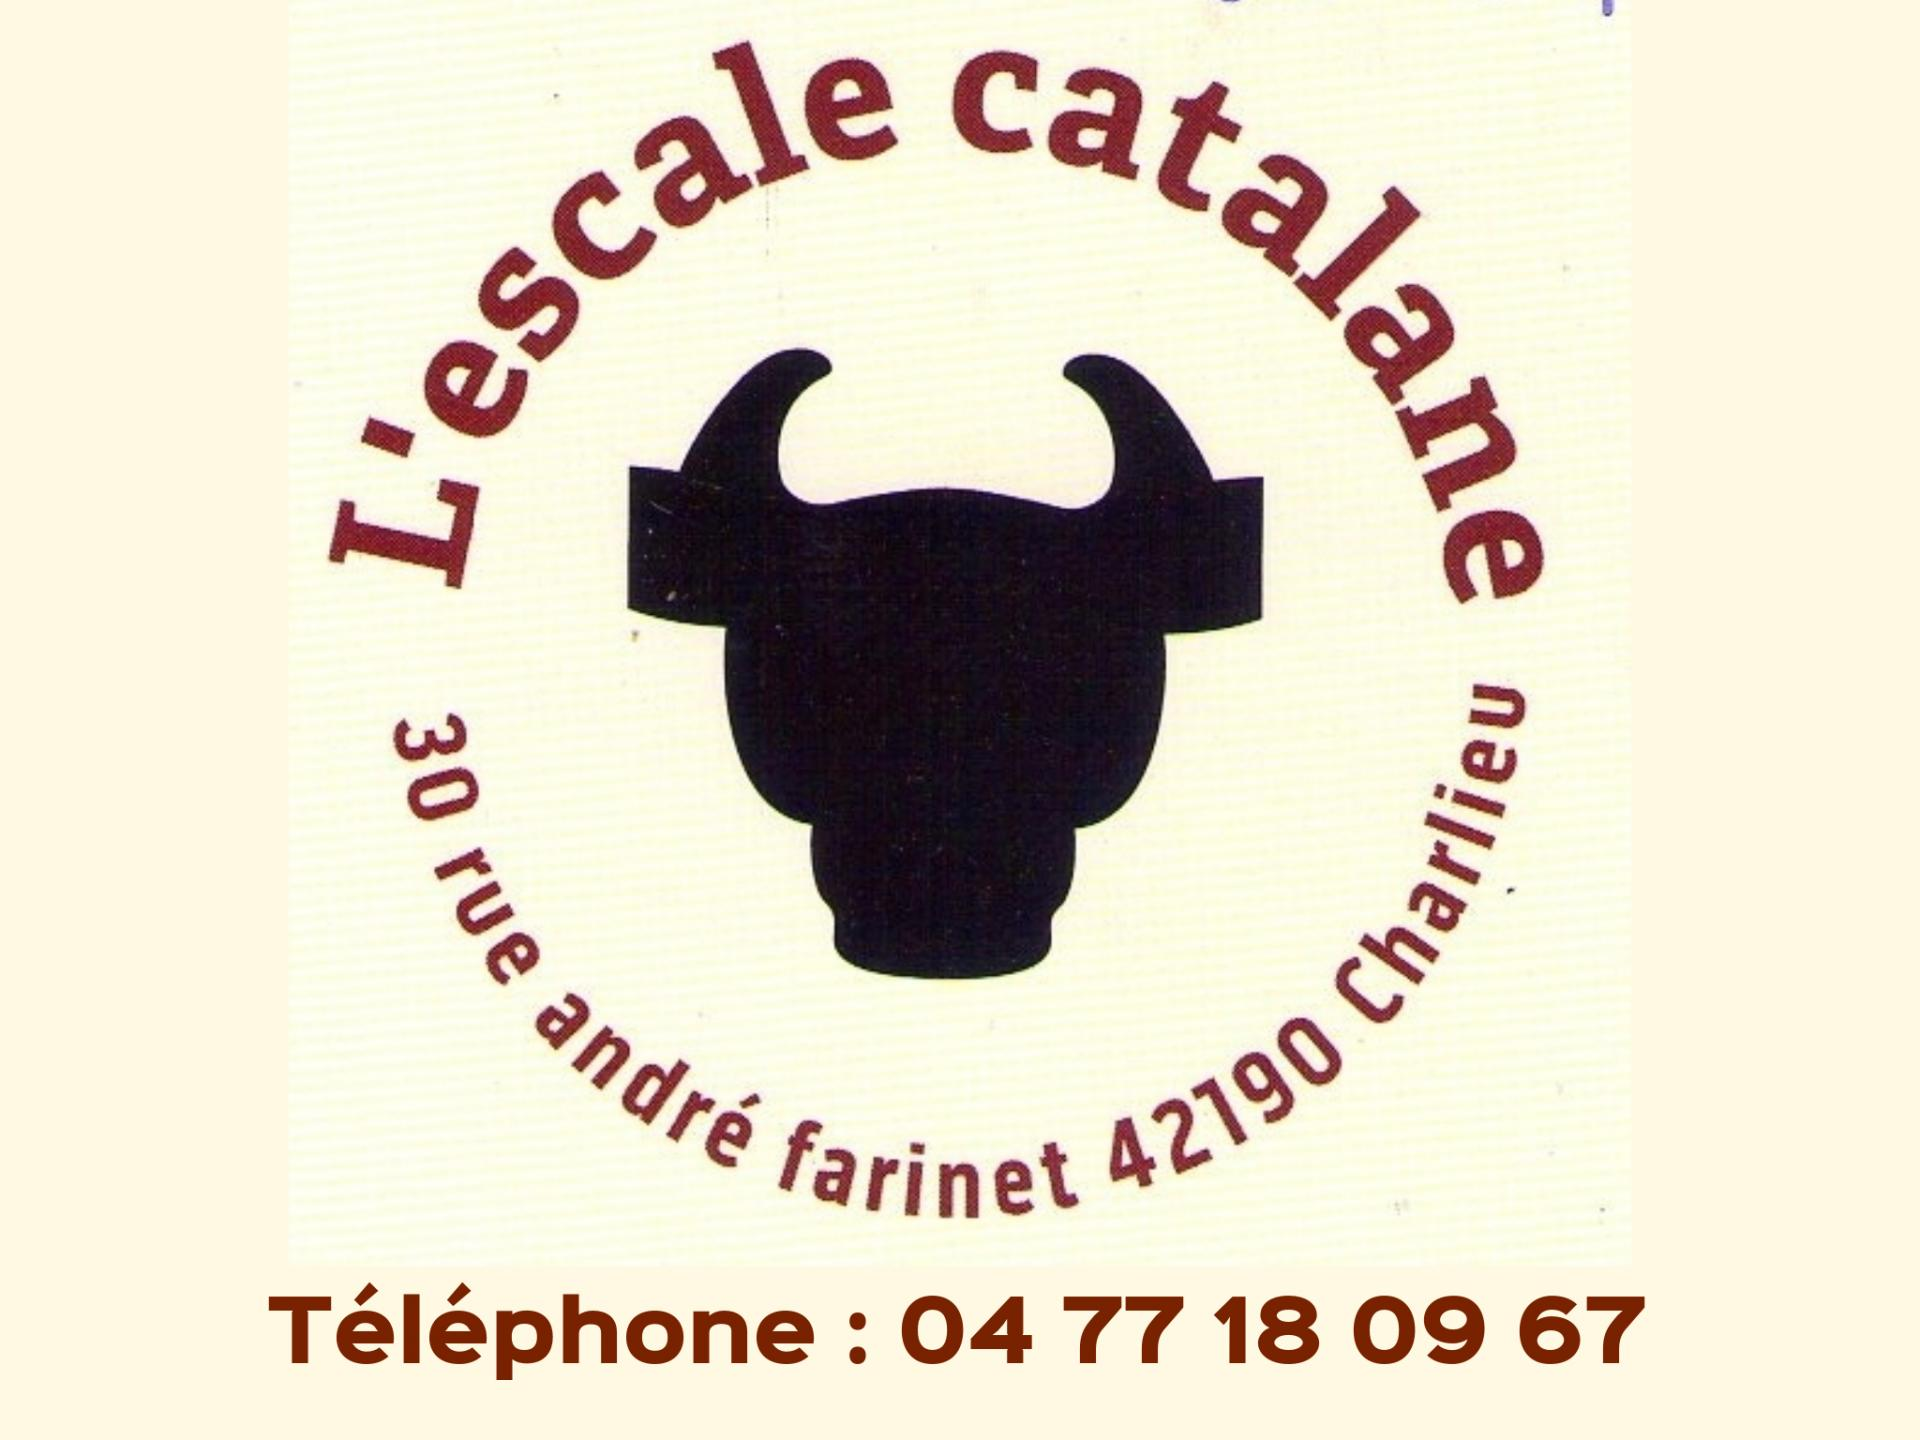 Carte Escale catalane